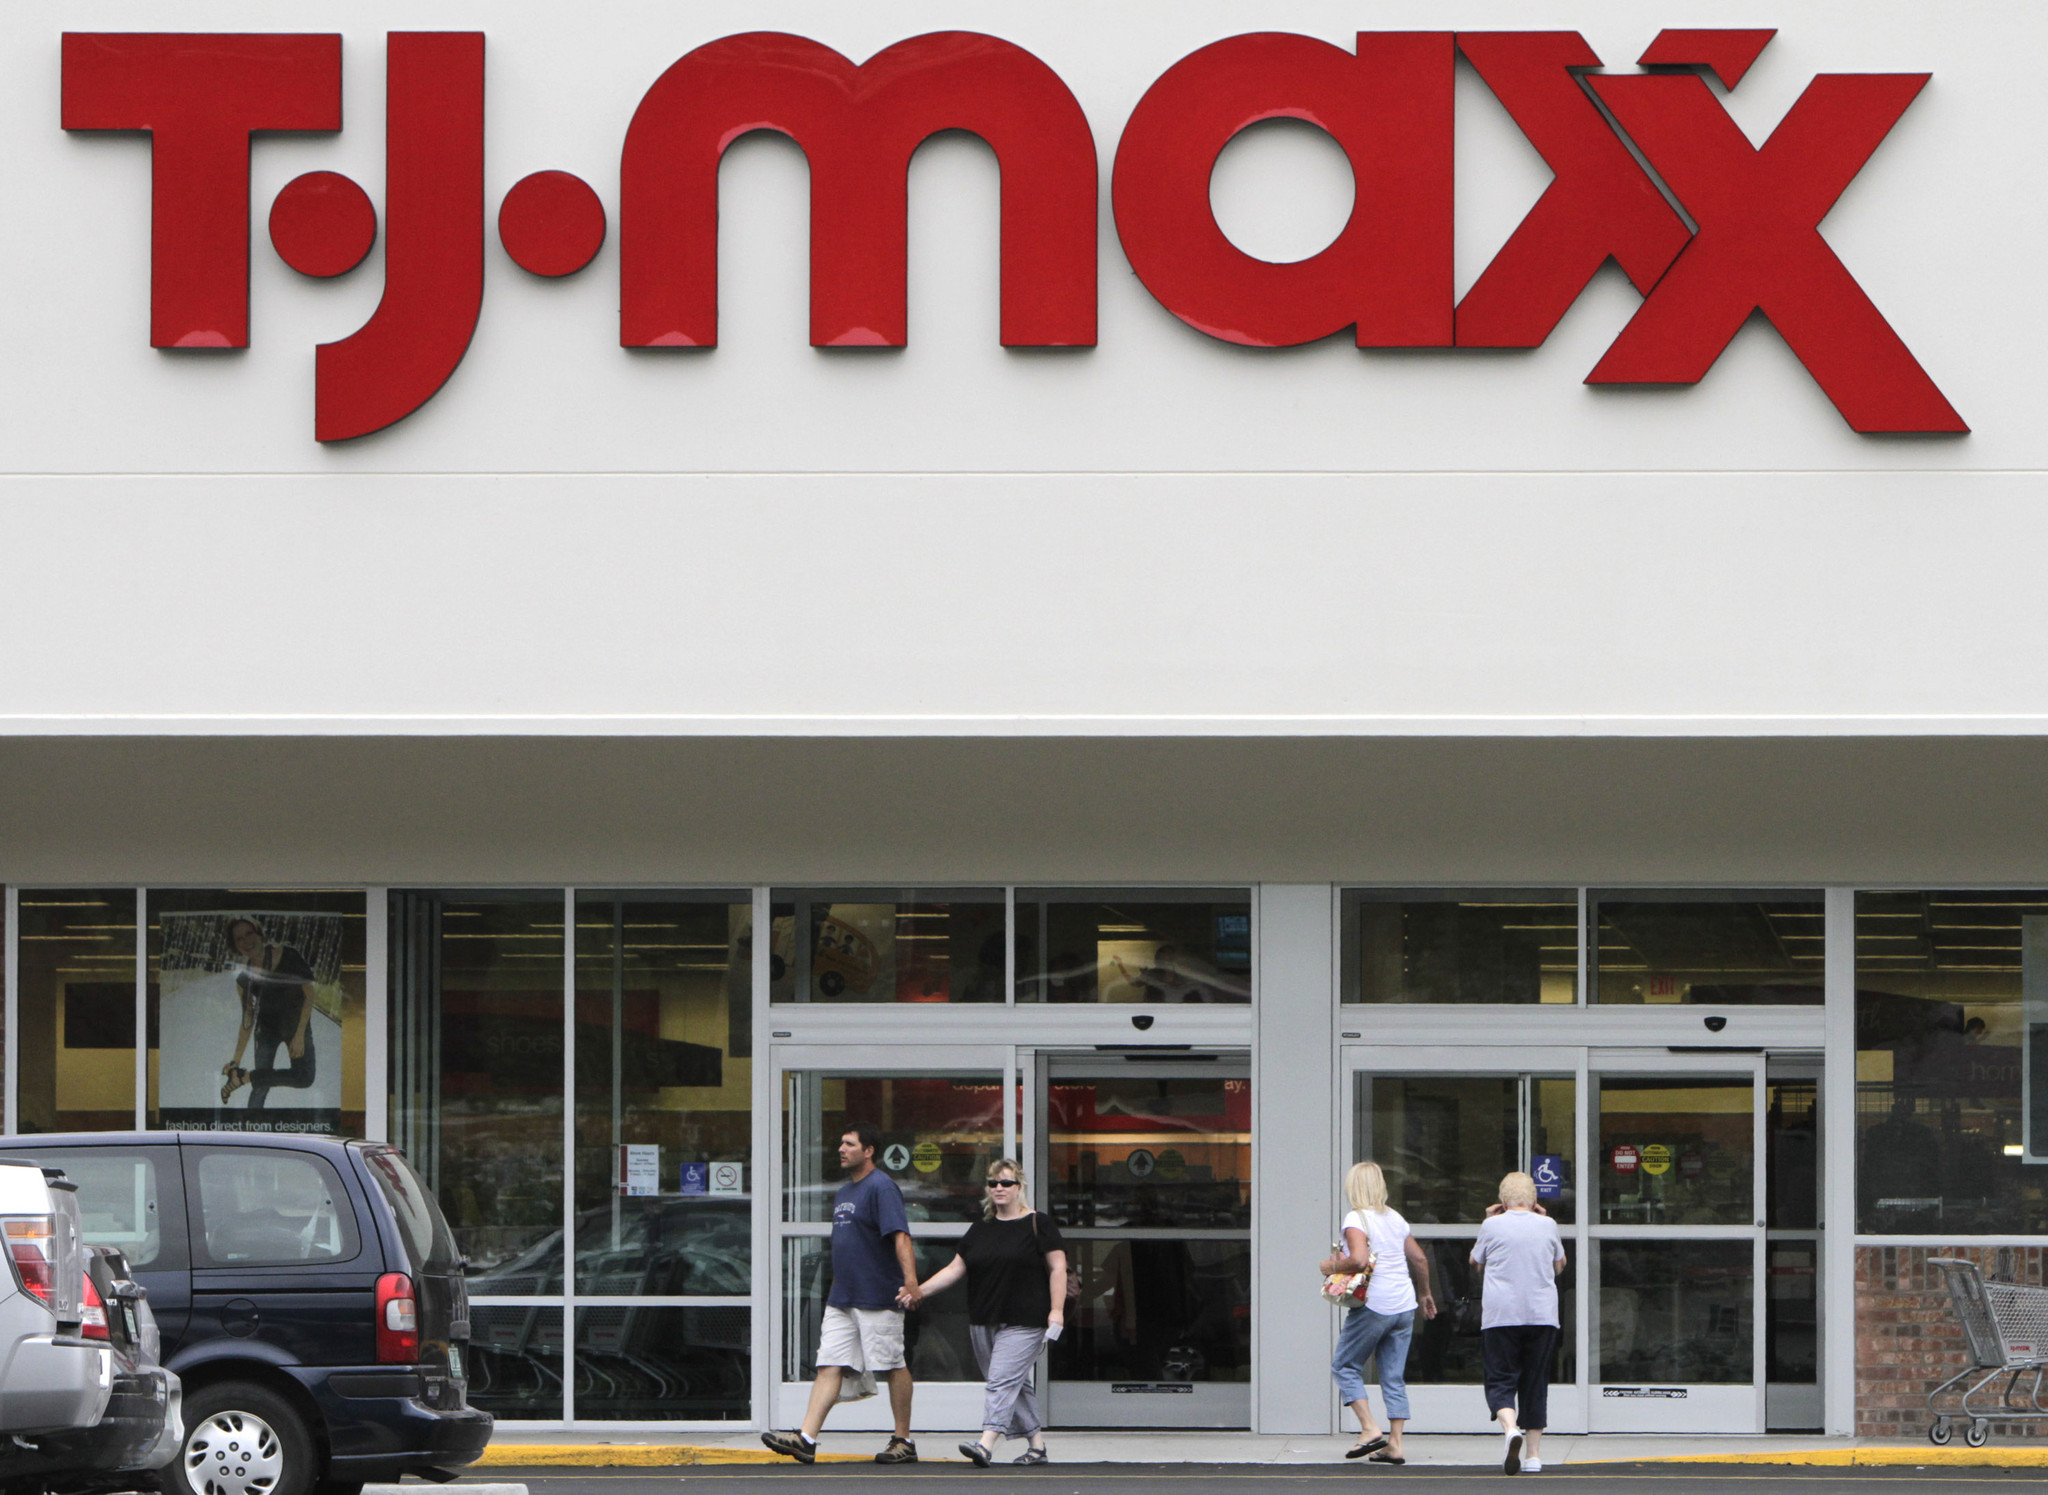 http://www.chicagotribune.com/business/ct-tj-maxx-thriving-retail-struggles-20160517-story.html